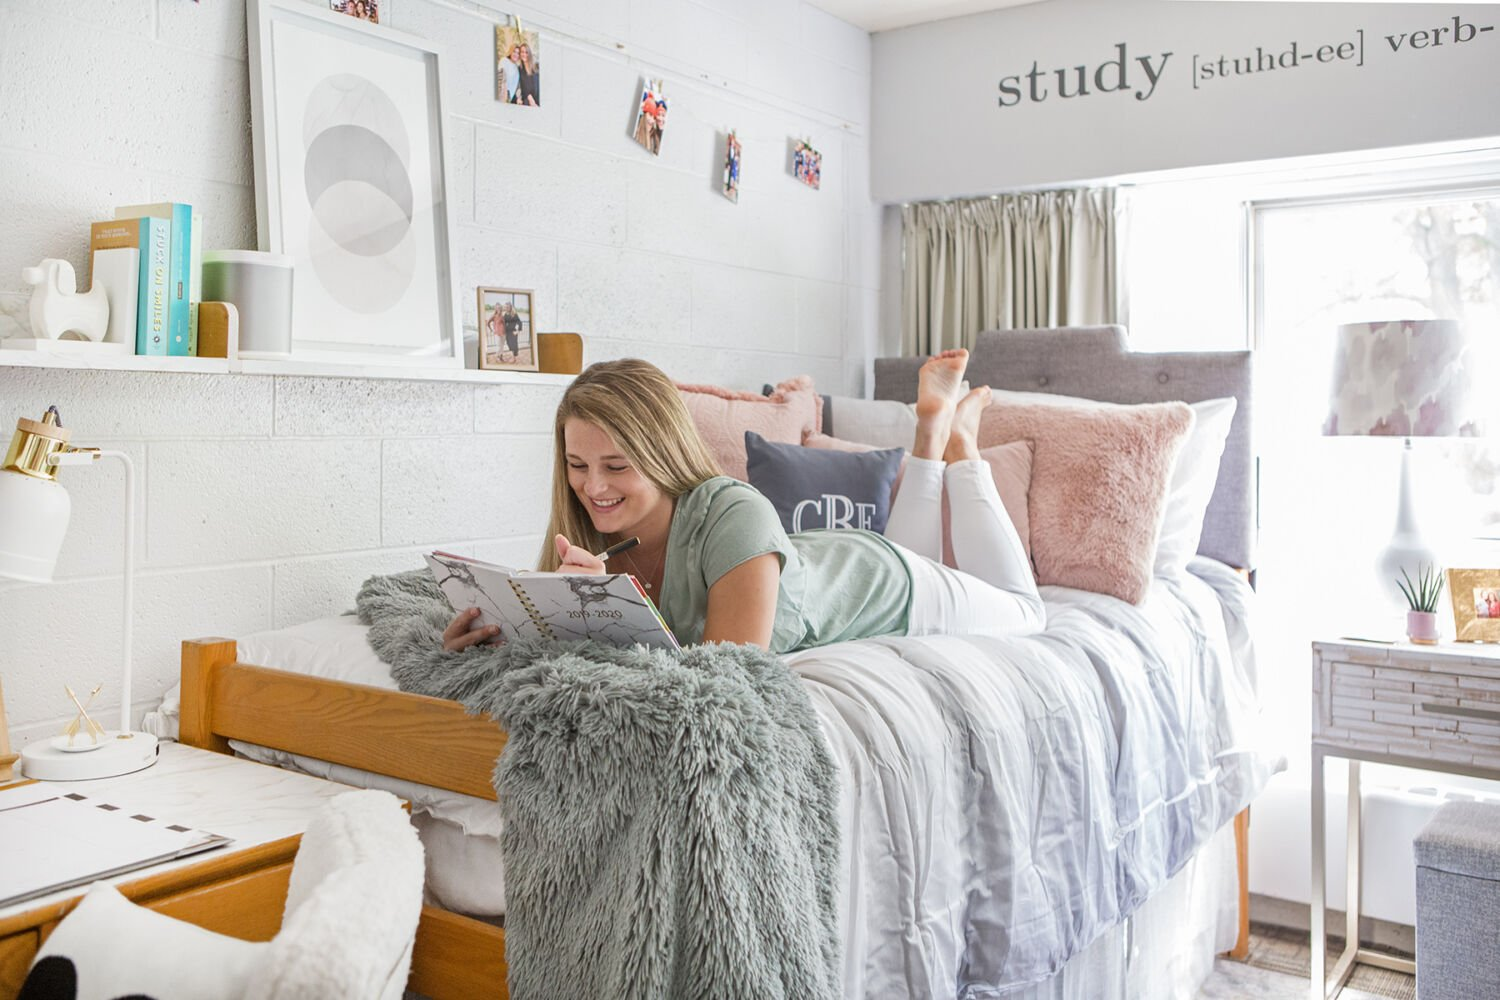 Making a freshman dorm room cozy and comfortable at Ithaca College with pretty bedding and personalized items from home